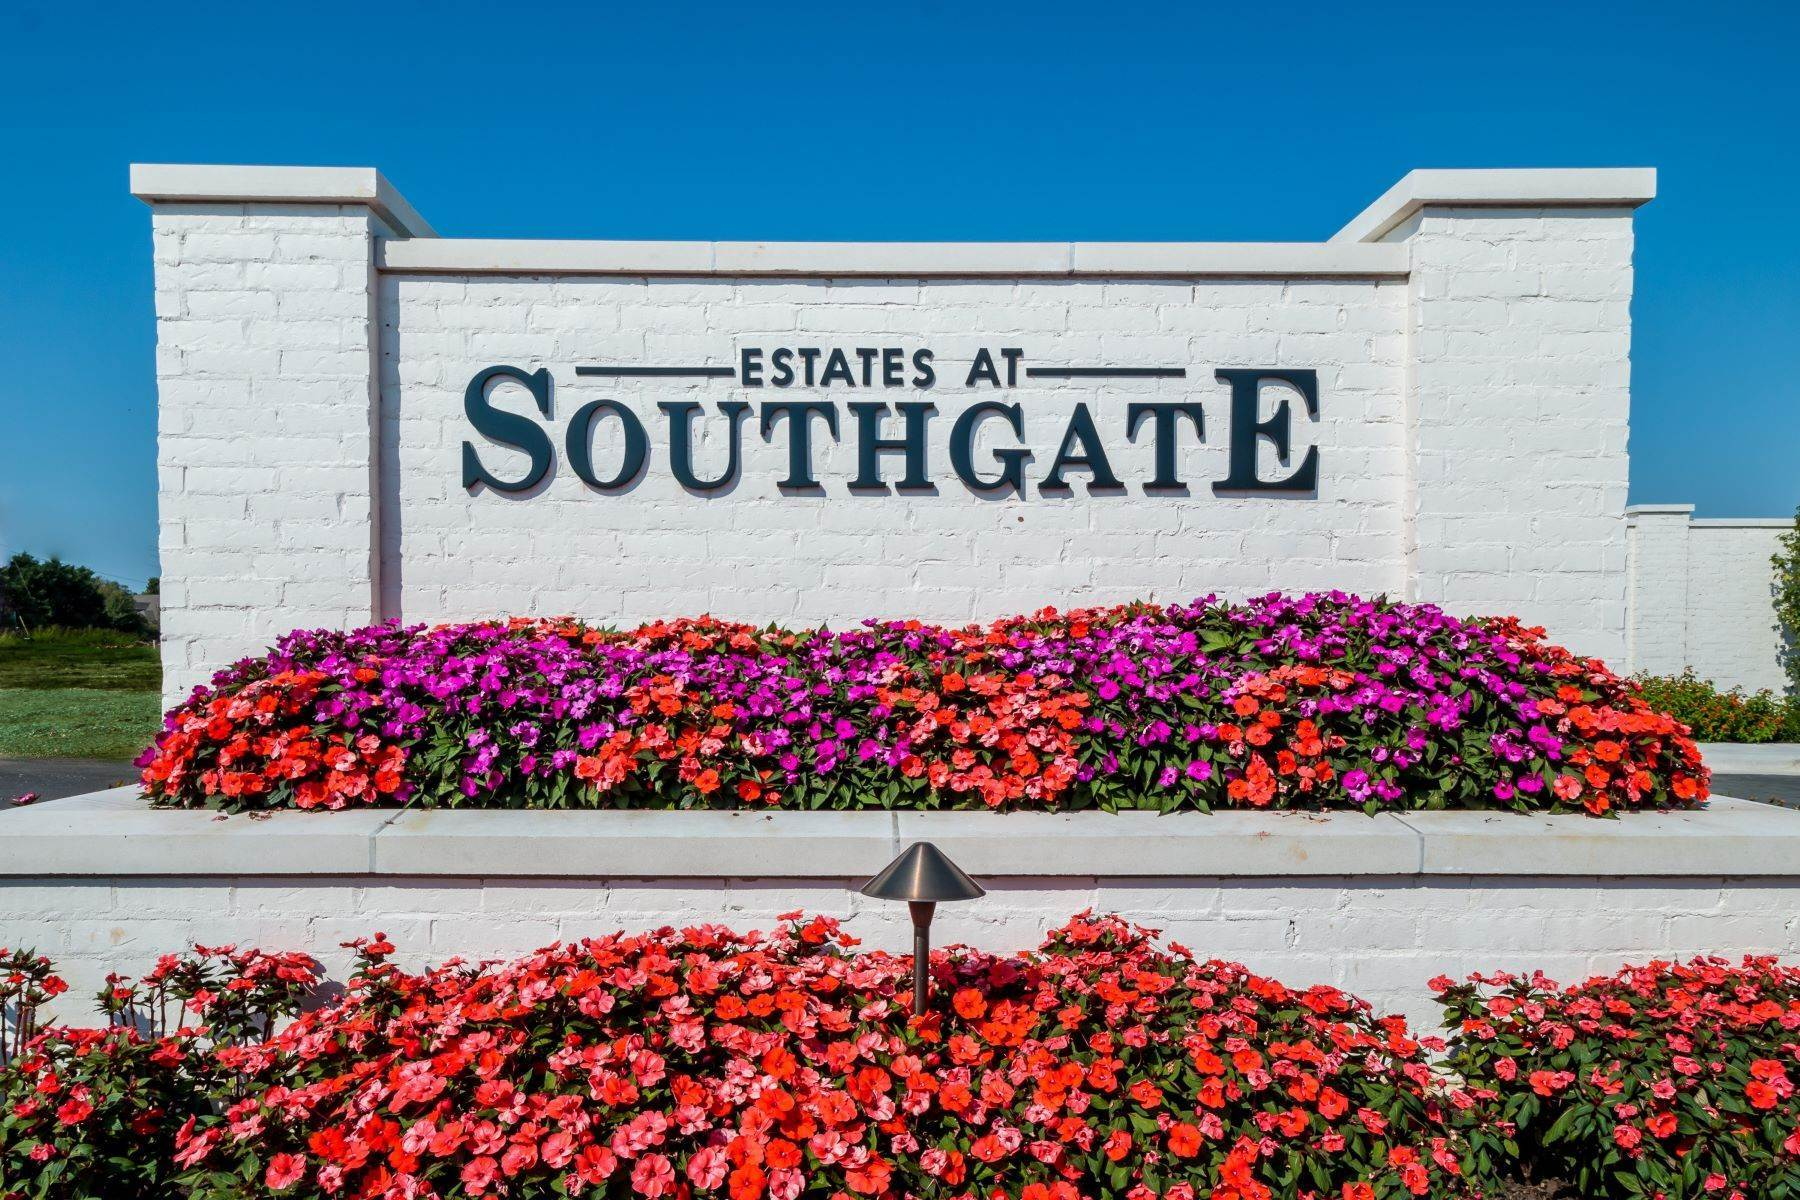 Land for Sale at Lot 9 Estates at Southgate 4816 Southgate Estates Circle Rogers, Arkansas 72758 United States